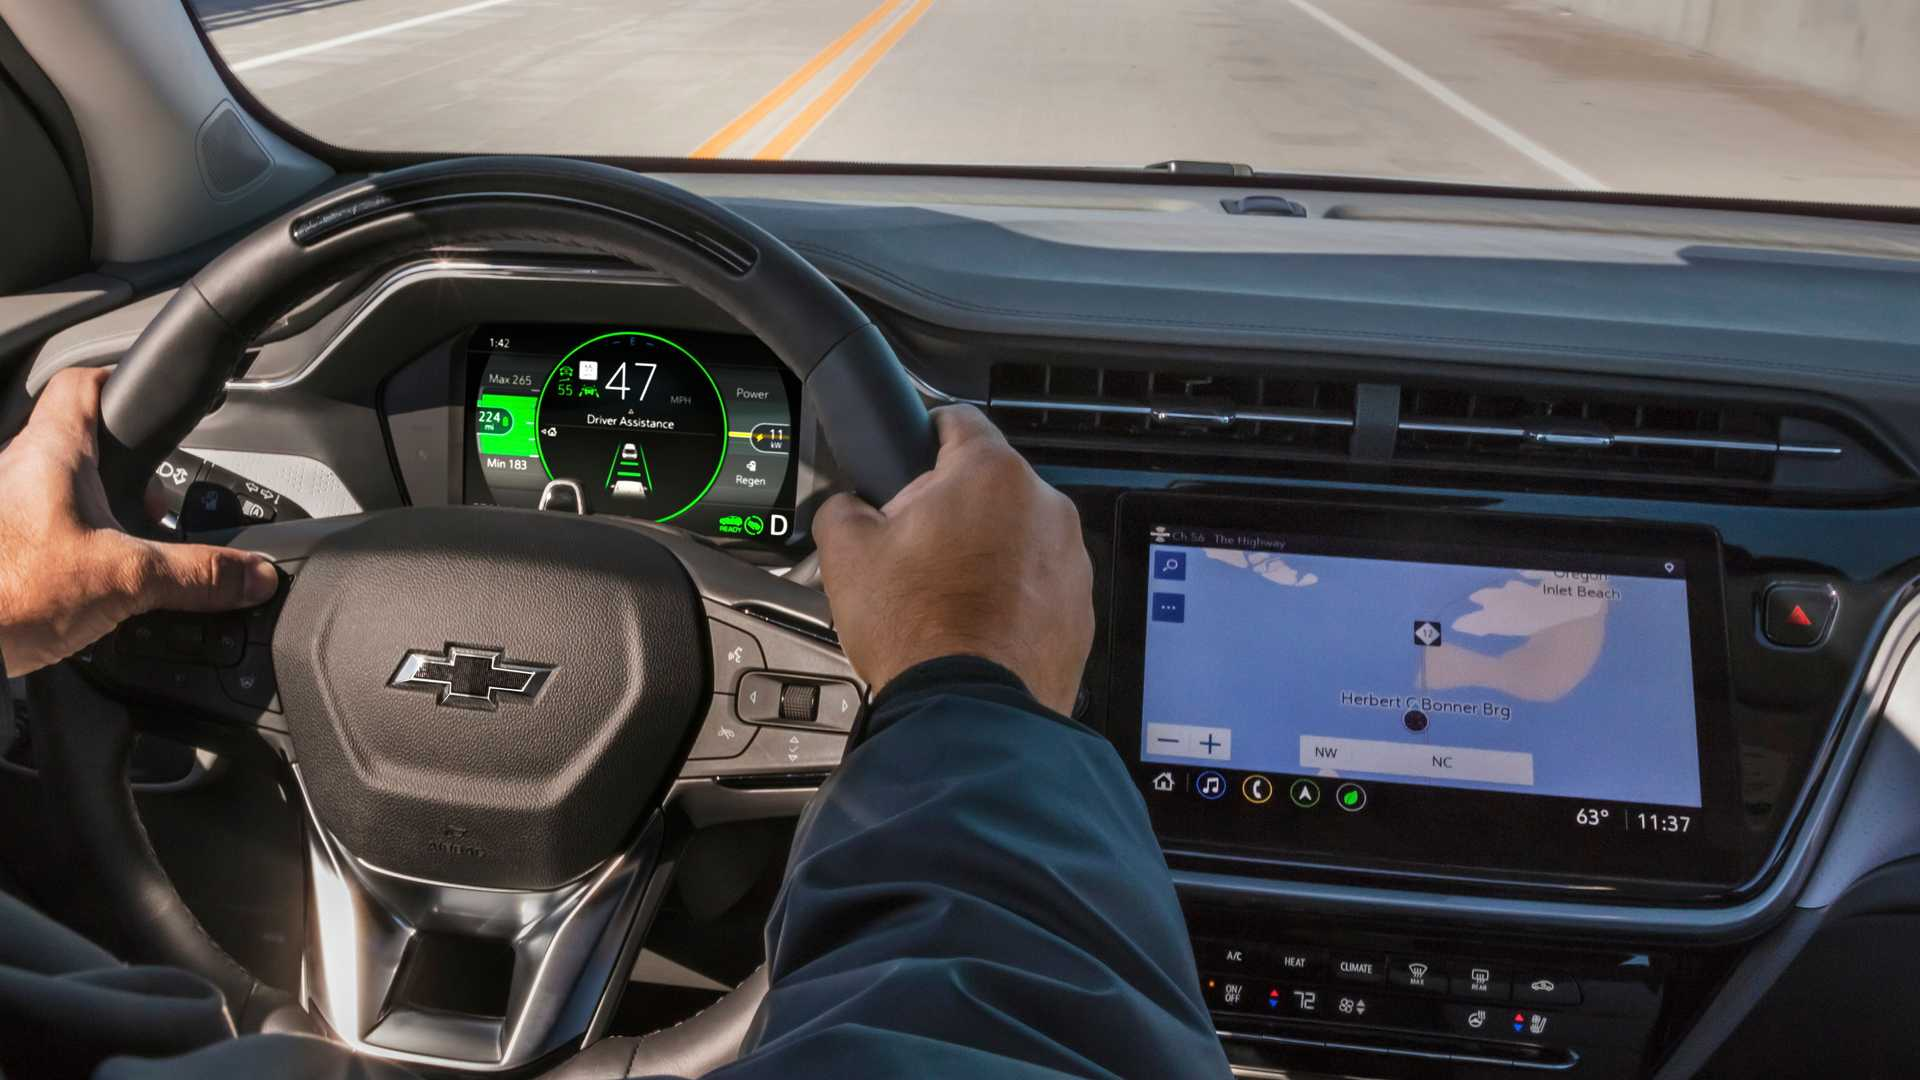 1614662501 473 The Chevrolet Bolt EUV will not have a General Motors The Chevrolet Bolt EUV will not have a General Motors semi-automatic system 4